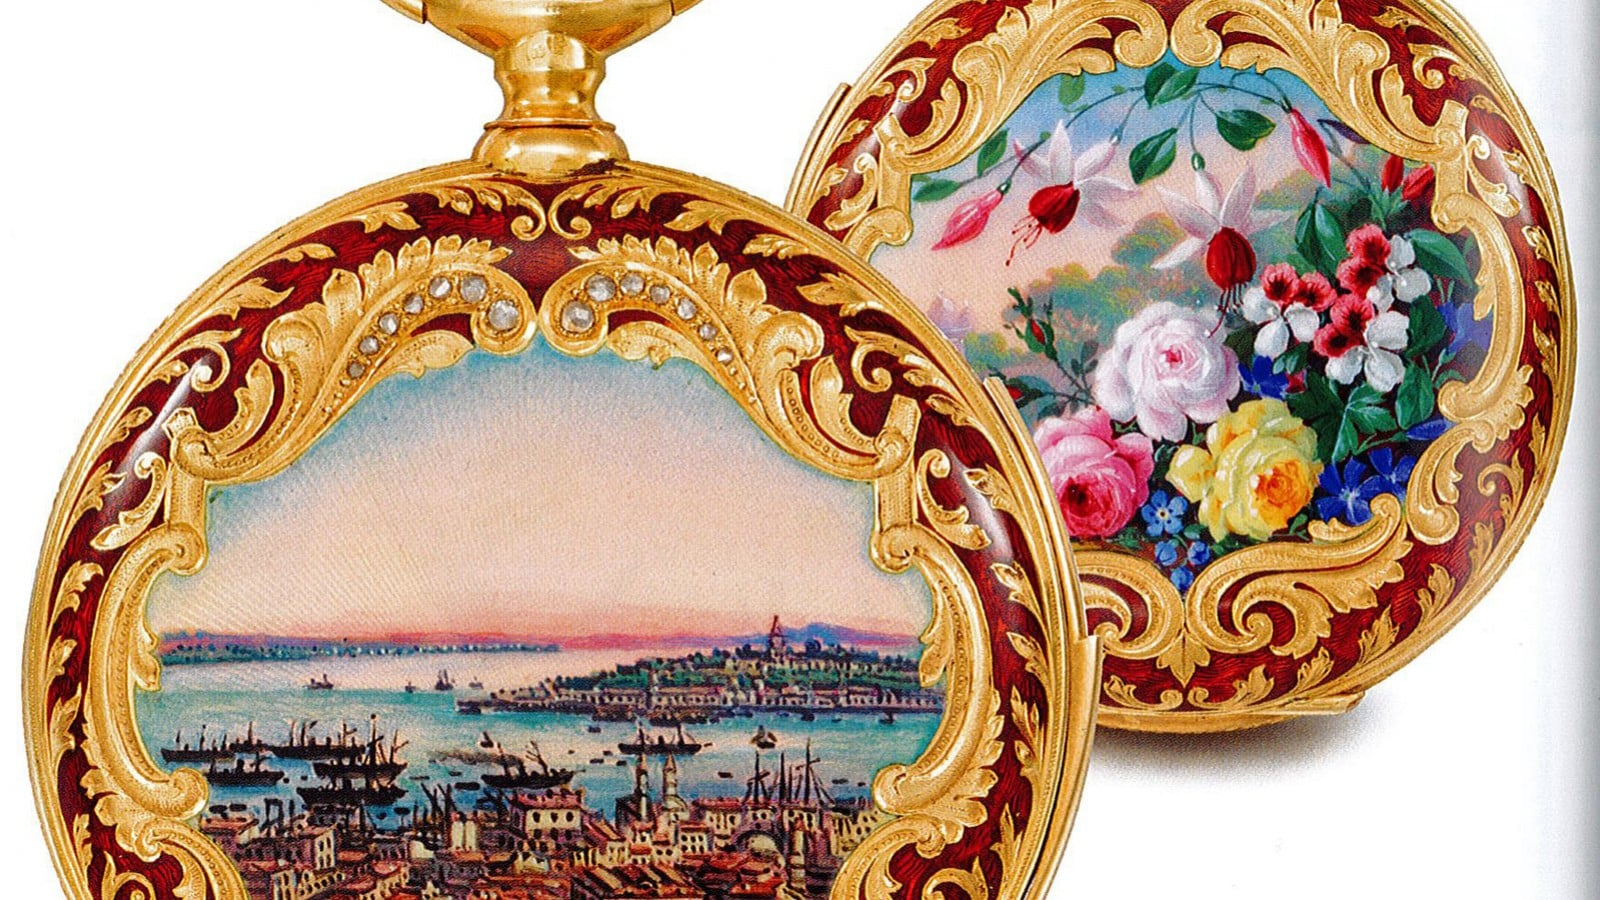 Enameled pocket watch decorated with delicate patterns